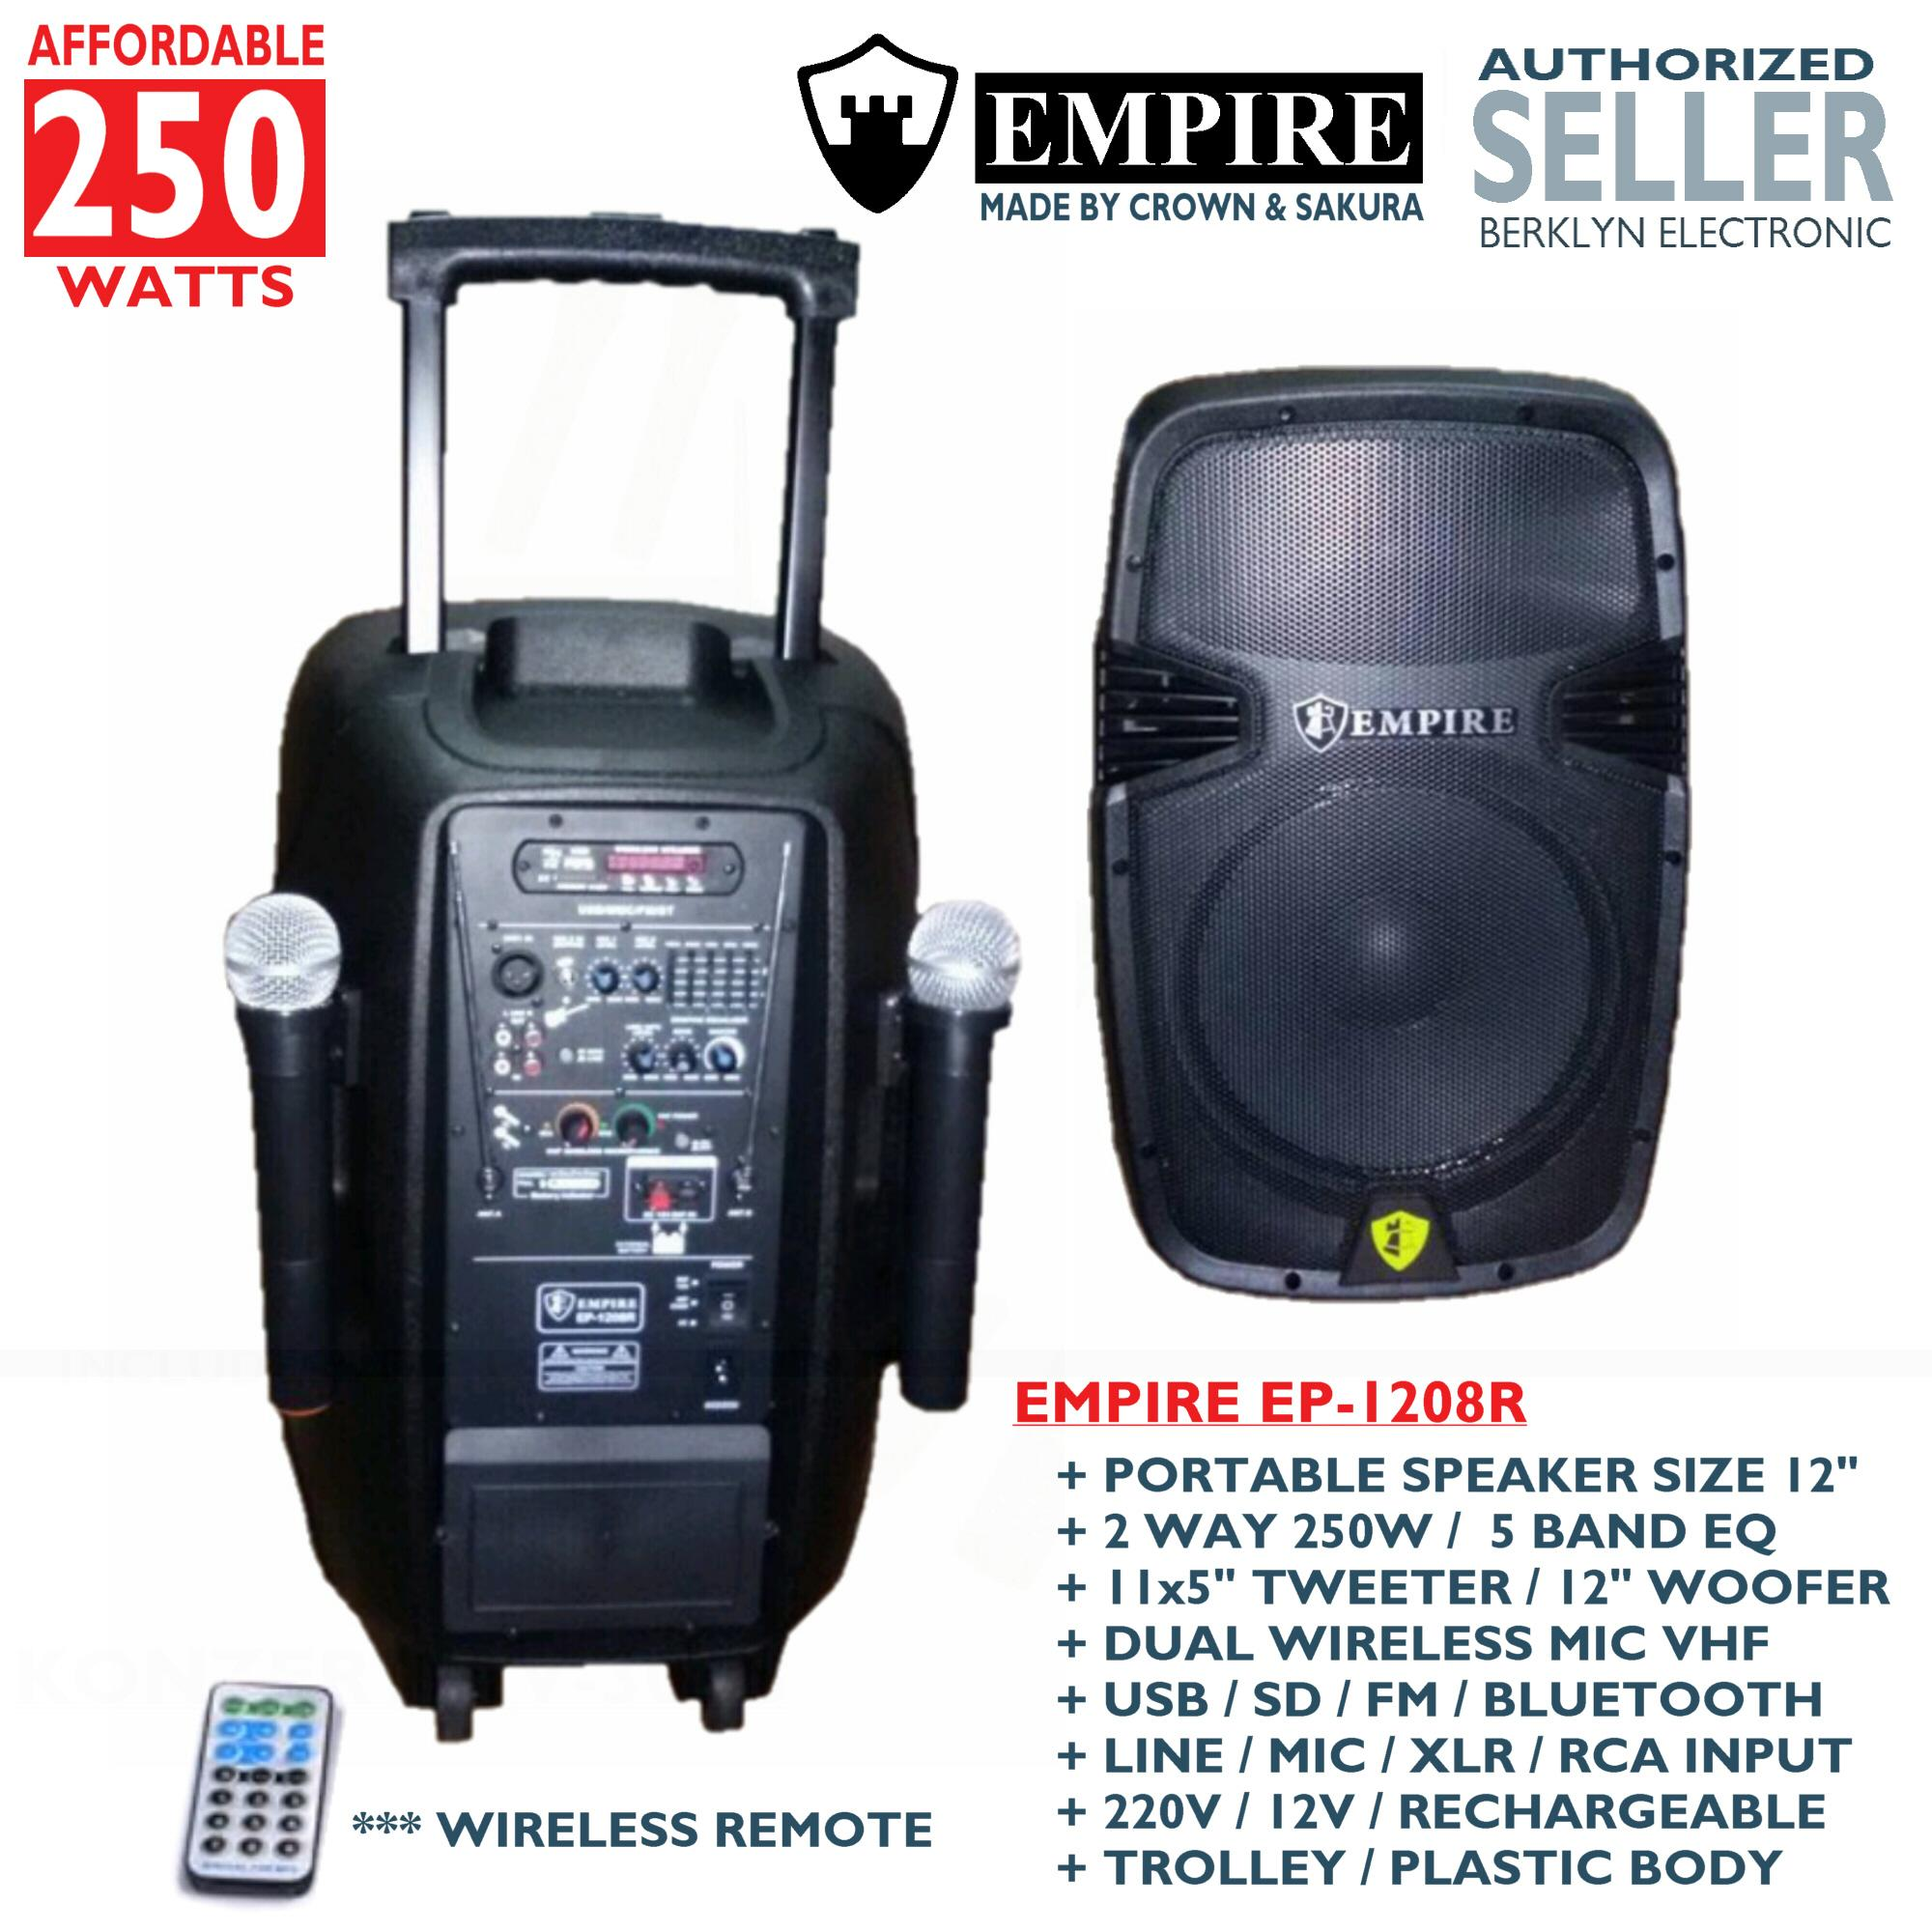 Empire EP-1208R 250 Watts Affordable Portable Active Powered Speaker +  Rechargeable + Dual Wireless Mic + Radio USB SD Bluetooth Aux + Trolley